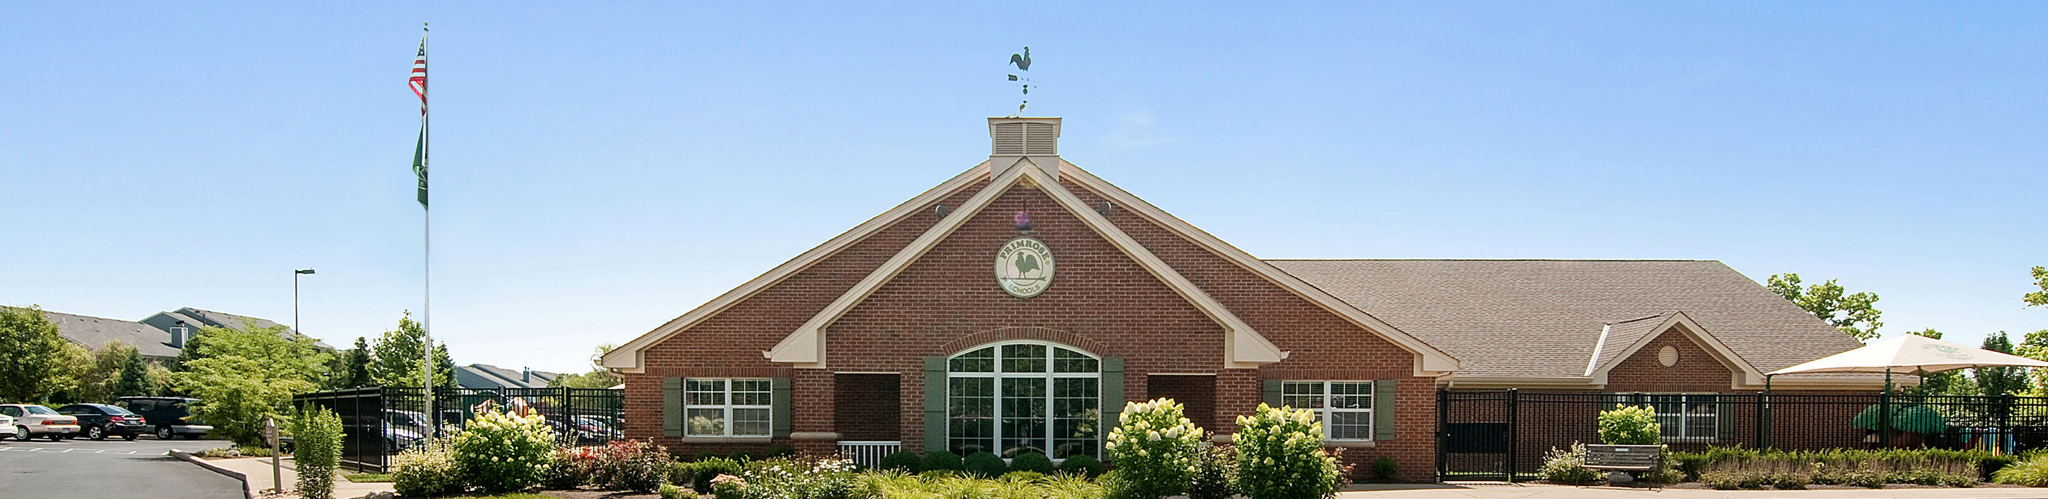 Home Primrose School Of West Chester Daycare And Preschool In